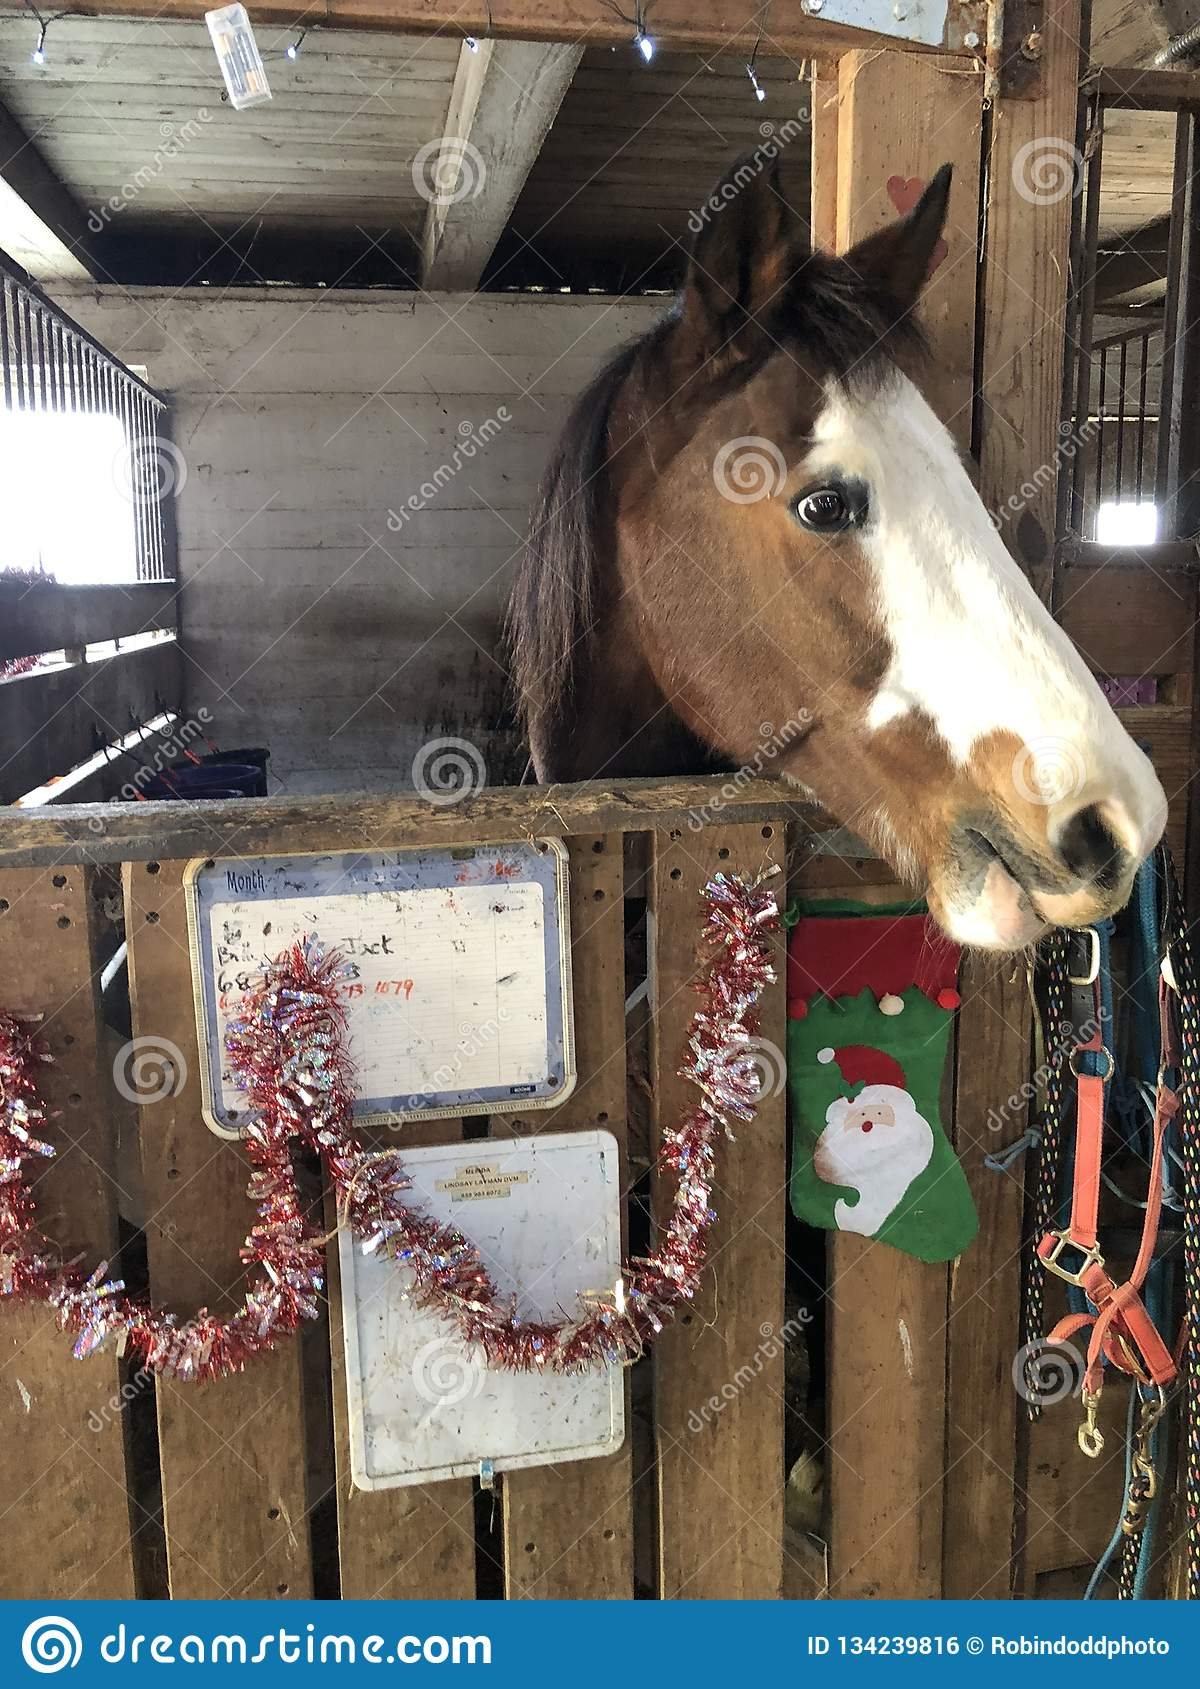 Brown Horse With A White Blaze In Stall Stock Photo Image Of Stall Christmas 134239816